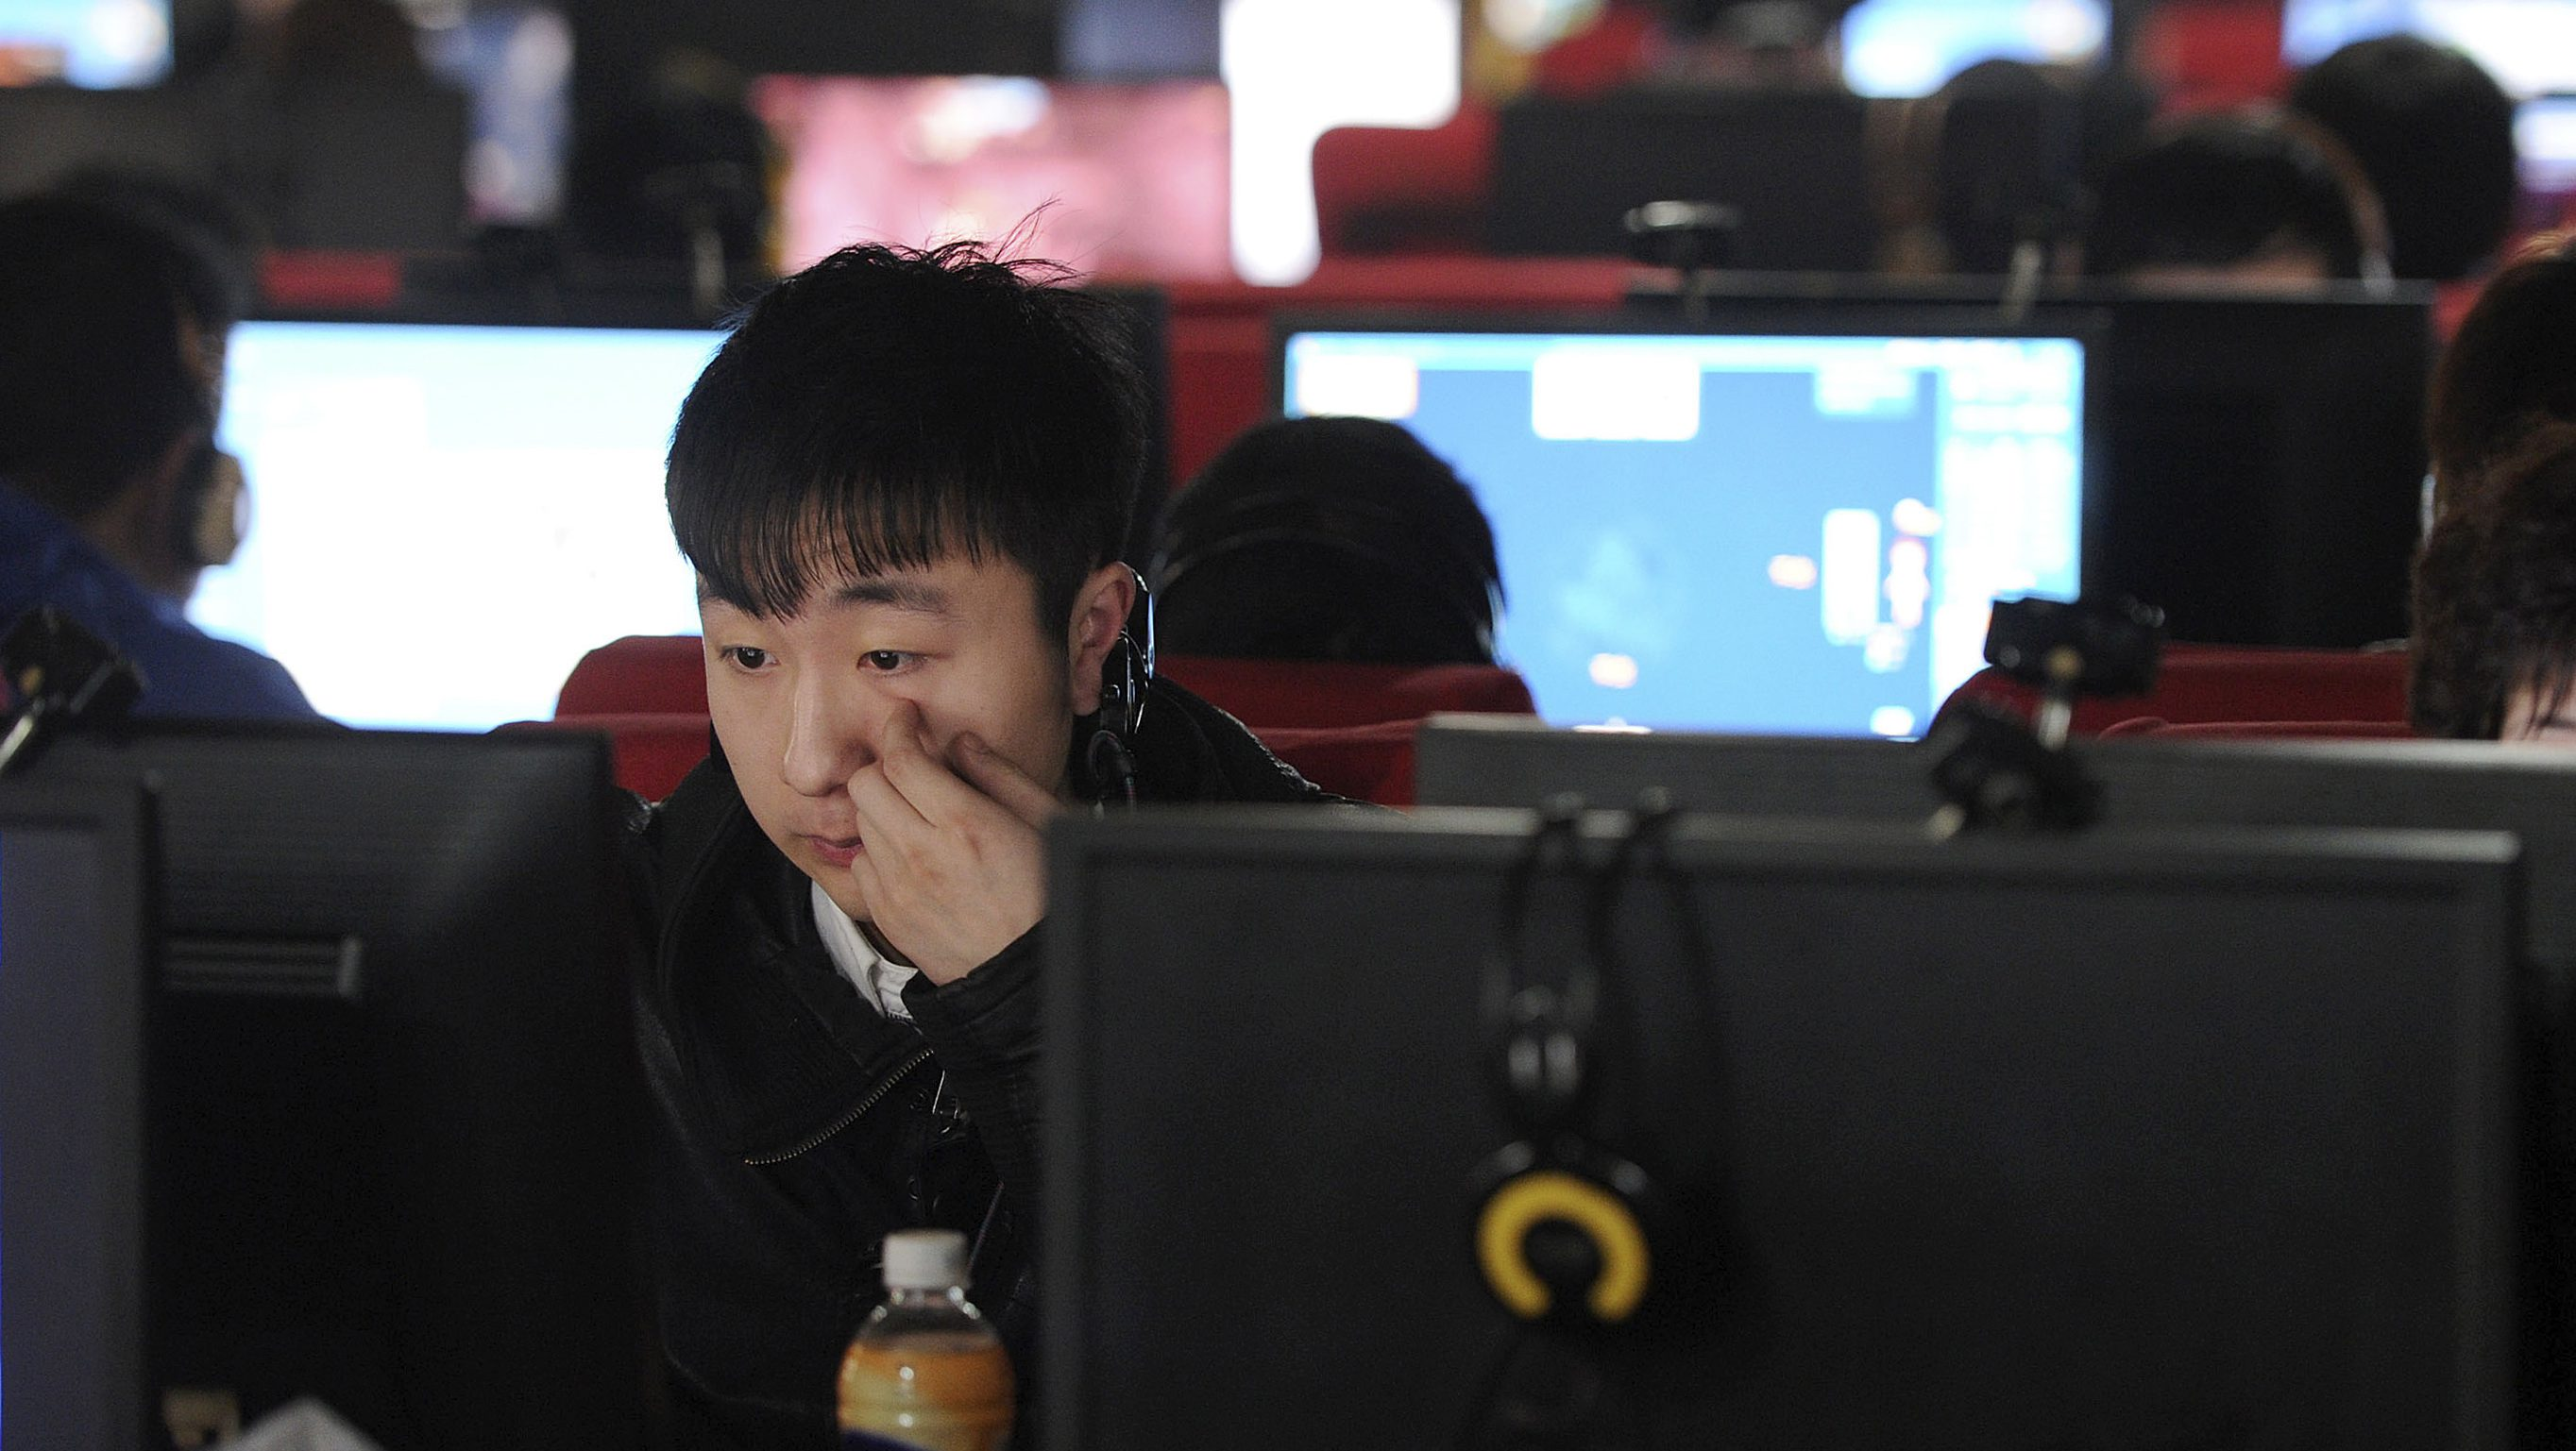 A man scratches his face as he uses a computer at an internet cafe in Hefei, Anhui province March 16, 2012. As of Friday, Beijing-based microbloggers were required to register on the Weibo platform using their real identities or face unspecified legal consequences, in a bid to curb what Communist officials call rumours, vulgarities and pornography. Many users, however, say the restrictions are clearly aimed at muzzling the often scathing, raucous - and perhaps most significantly, anonymous - online chatter in a country where the Internet offers a rare opportunity for open discussion. REUTERS/Stringer